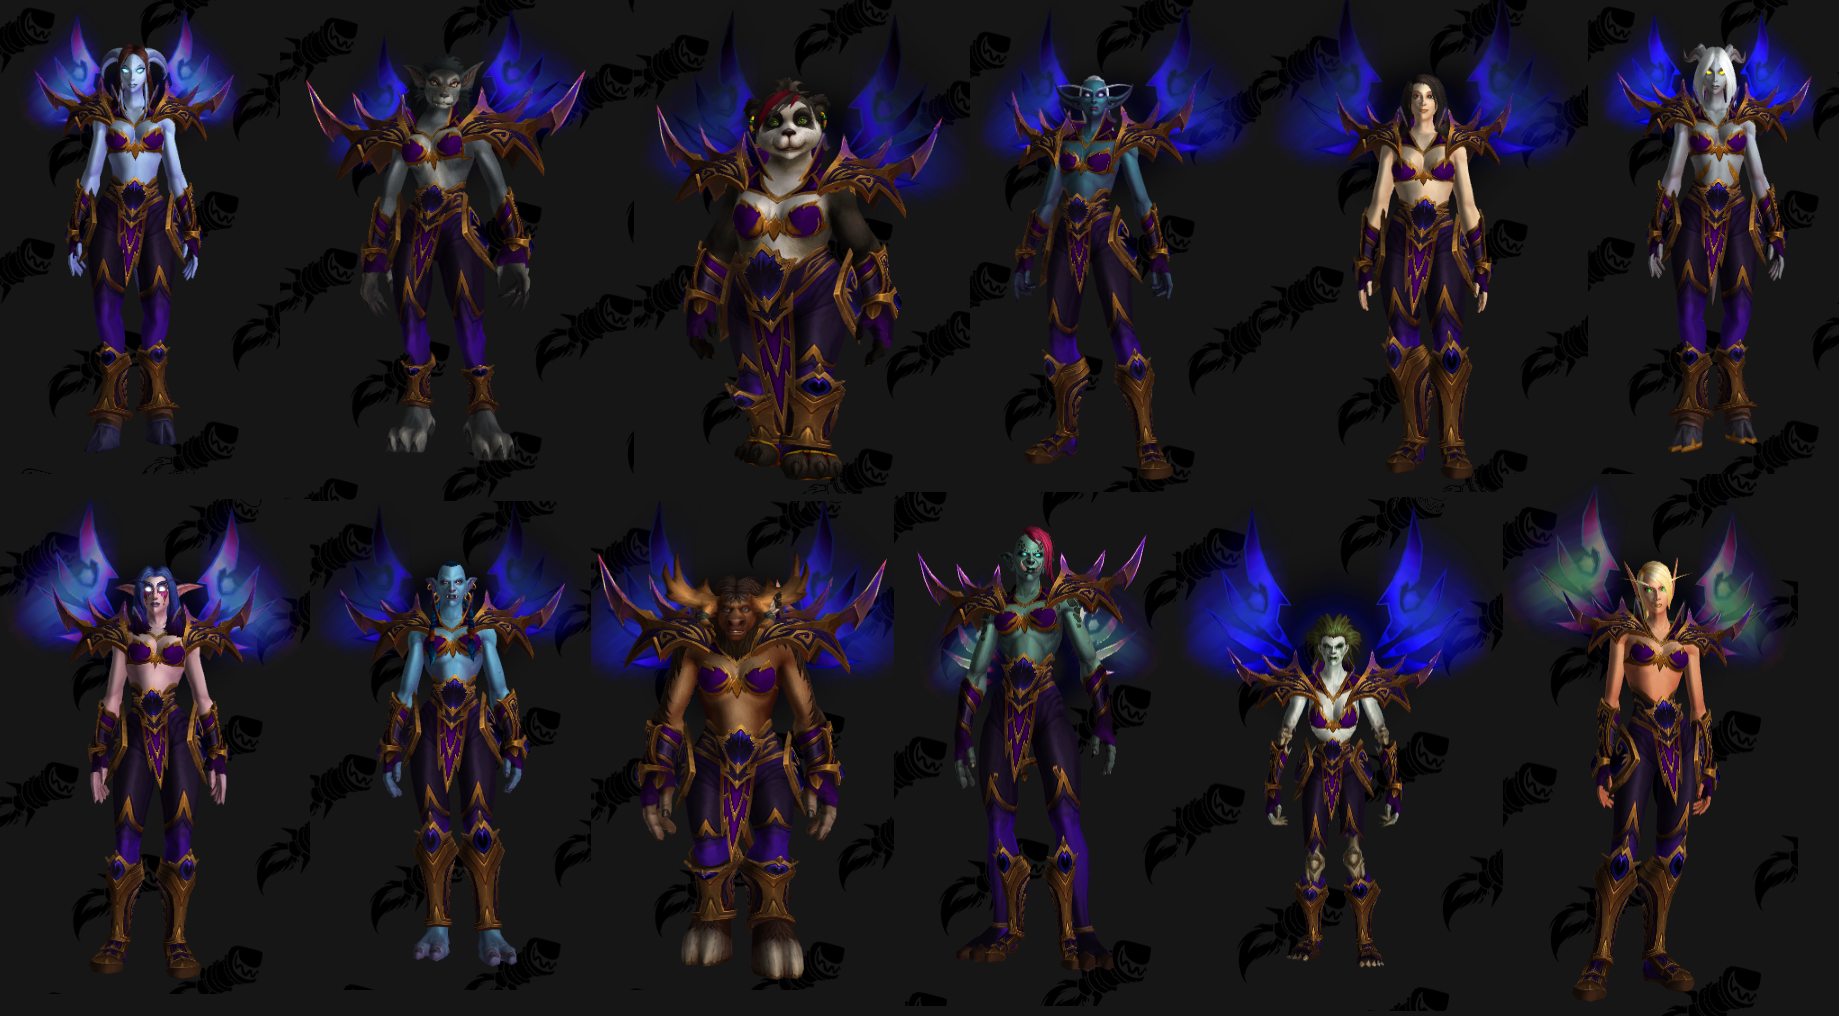 Void Elf Heritage Armor On Females Of Other Races Gnomes And Goblins Not Included Worldofwarcraft Blizzard Hearthstone Wow Elf World Of Warcraft Goblin Void elf tabards are now on the ptr. void elf heritage armor on females of